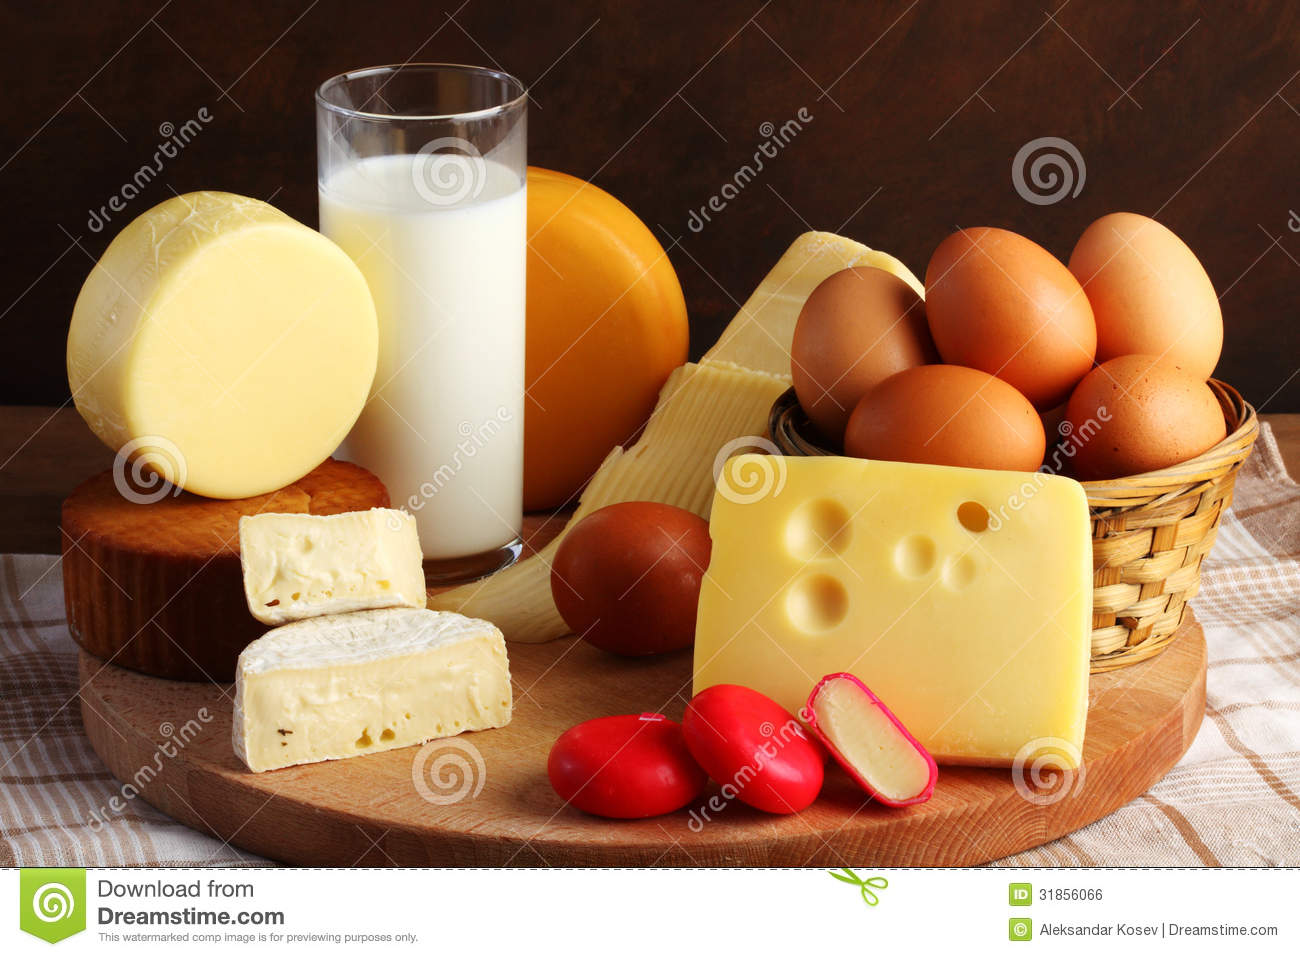 Dairy Products Royalty Free Stock Image - Image: 31856066